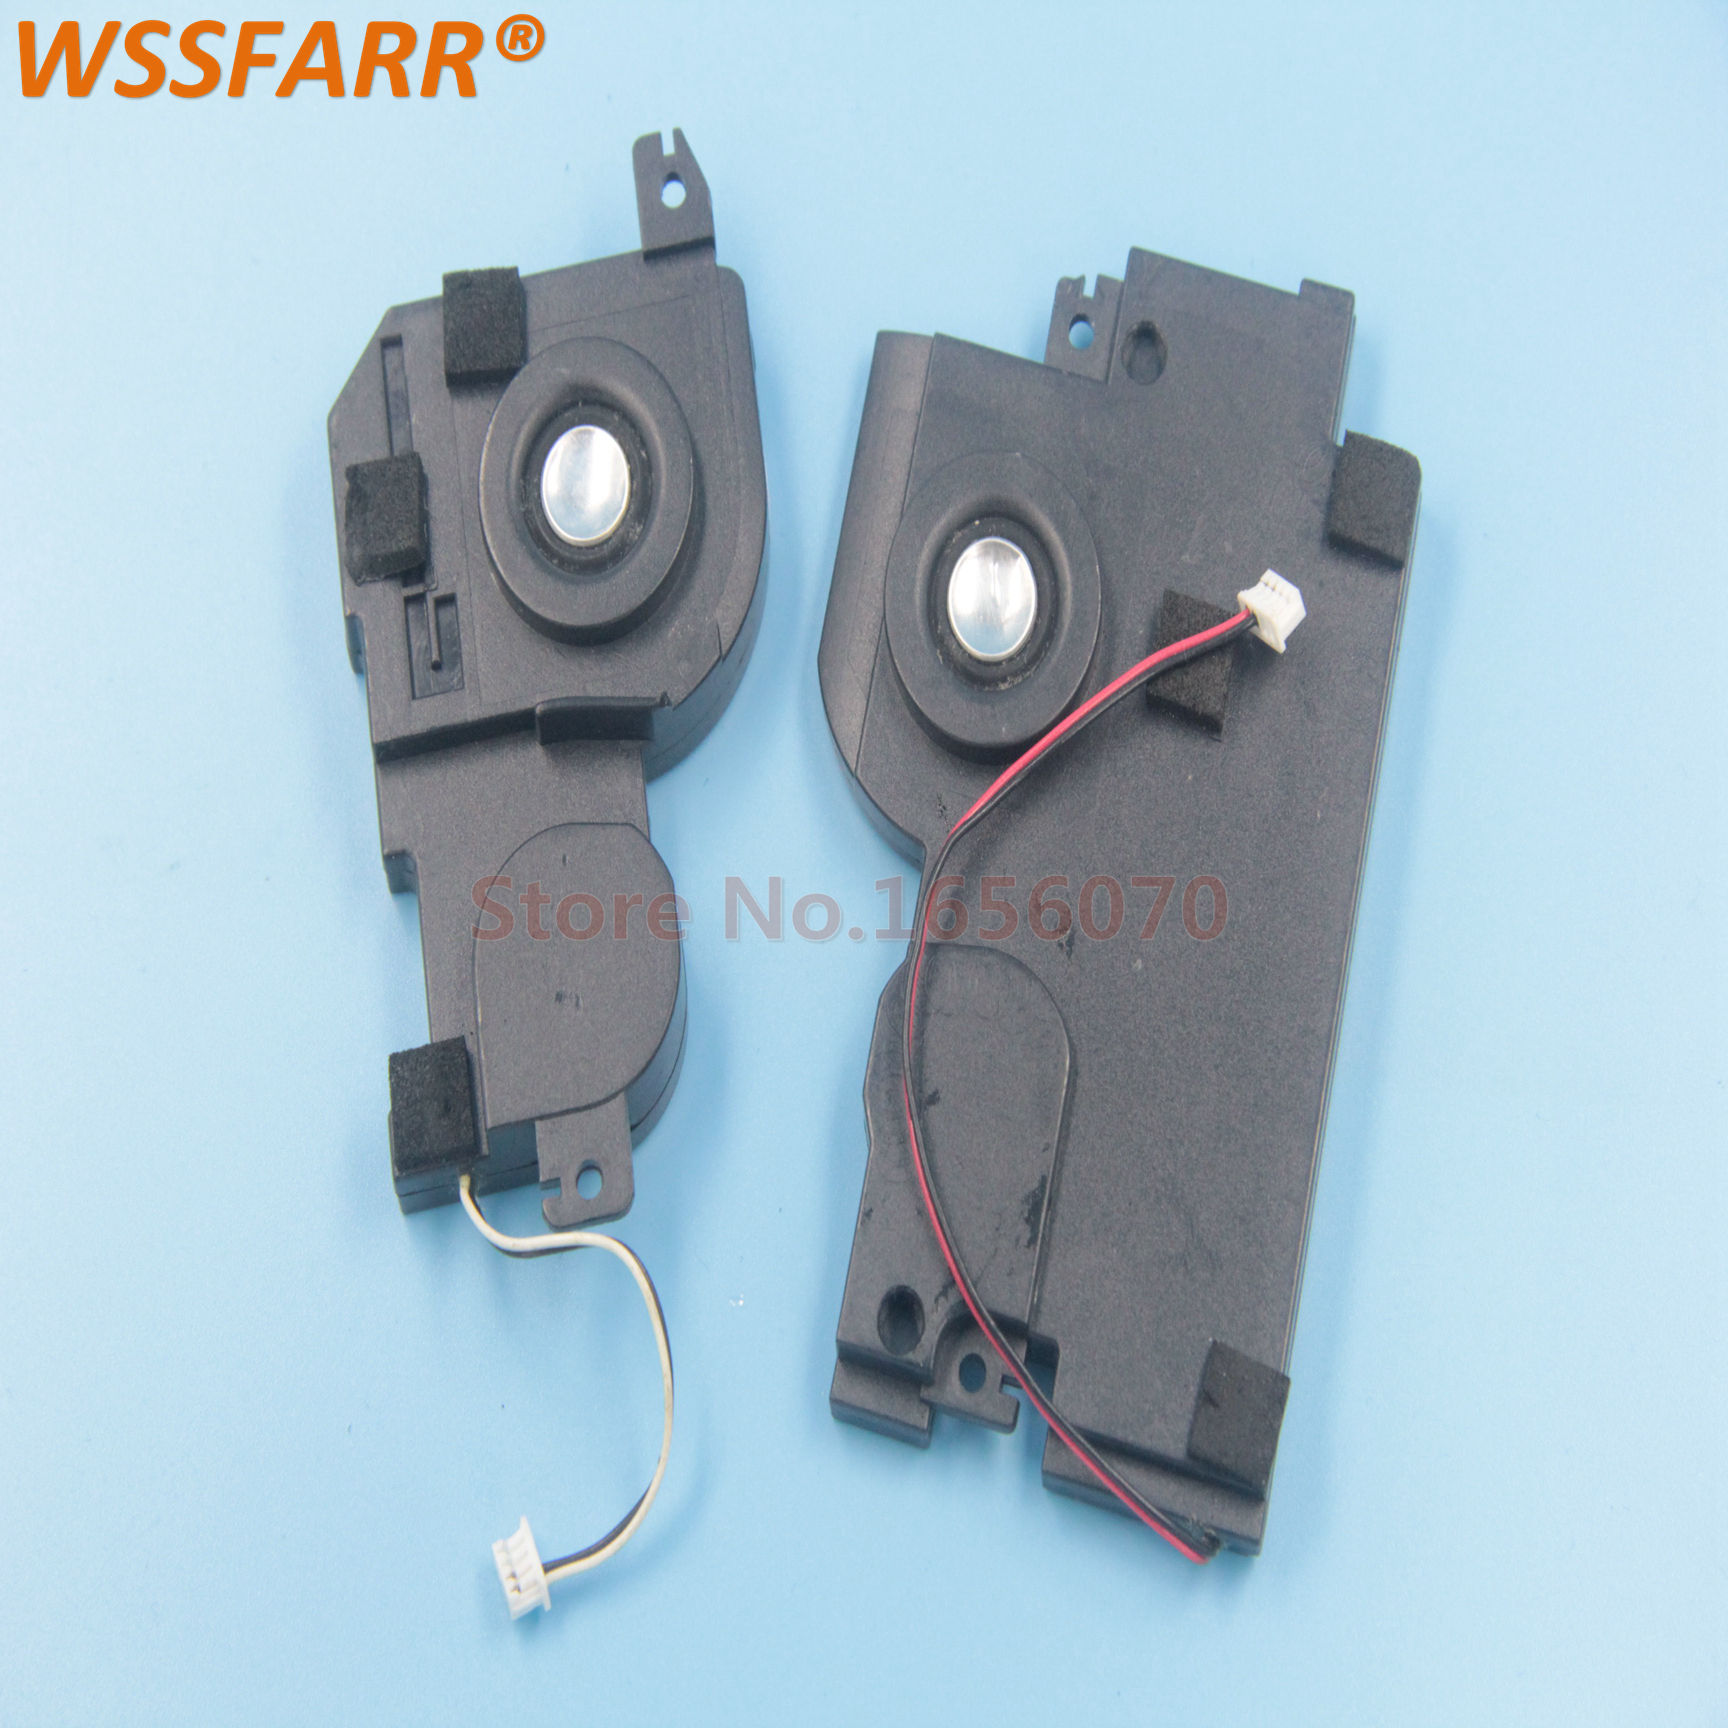 original internal speaker for toshiba p200 p205 x200 left and right speakers pk230006e00 pk230006e10 100  [ 1728 x 1728 Pixel ]